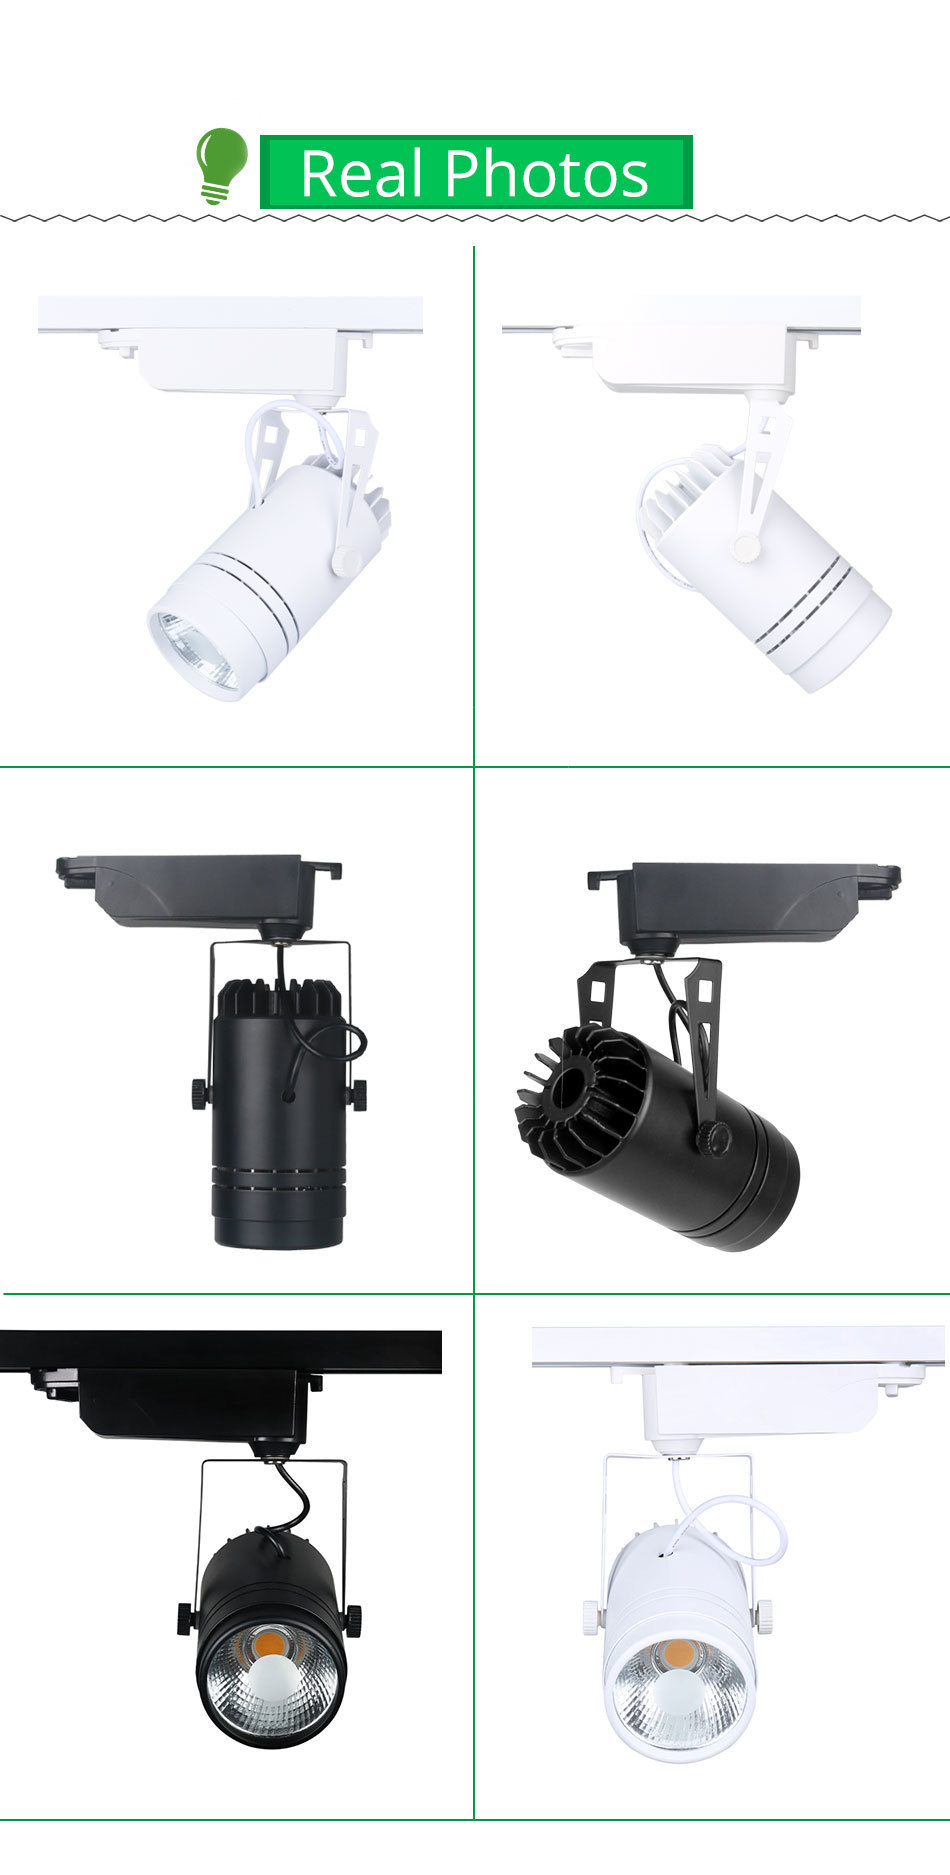 LED Tracking Light Dimmable 15W Spot Rail Lamp Clothing Shoe Store Shop Showroom Focusing Fixtures Spotlights Lights Lighting  (1)